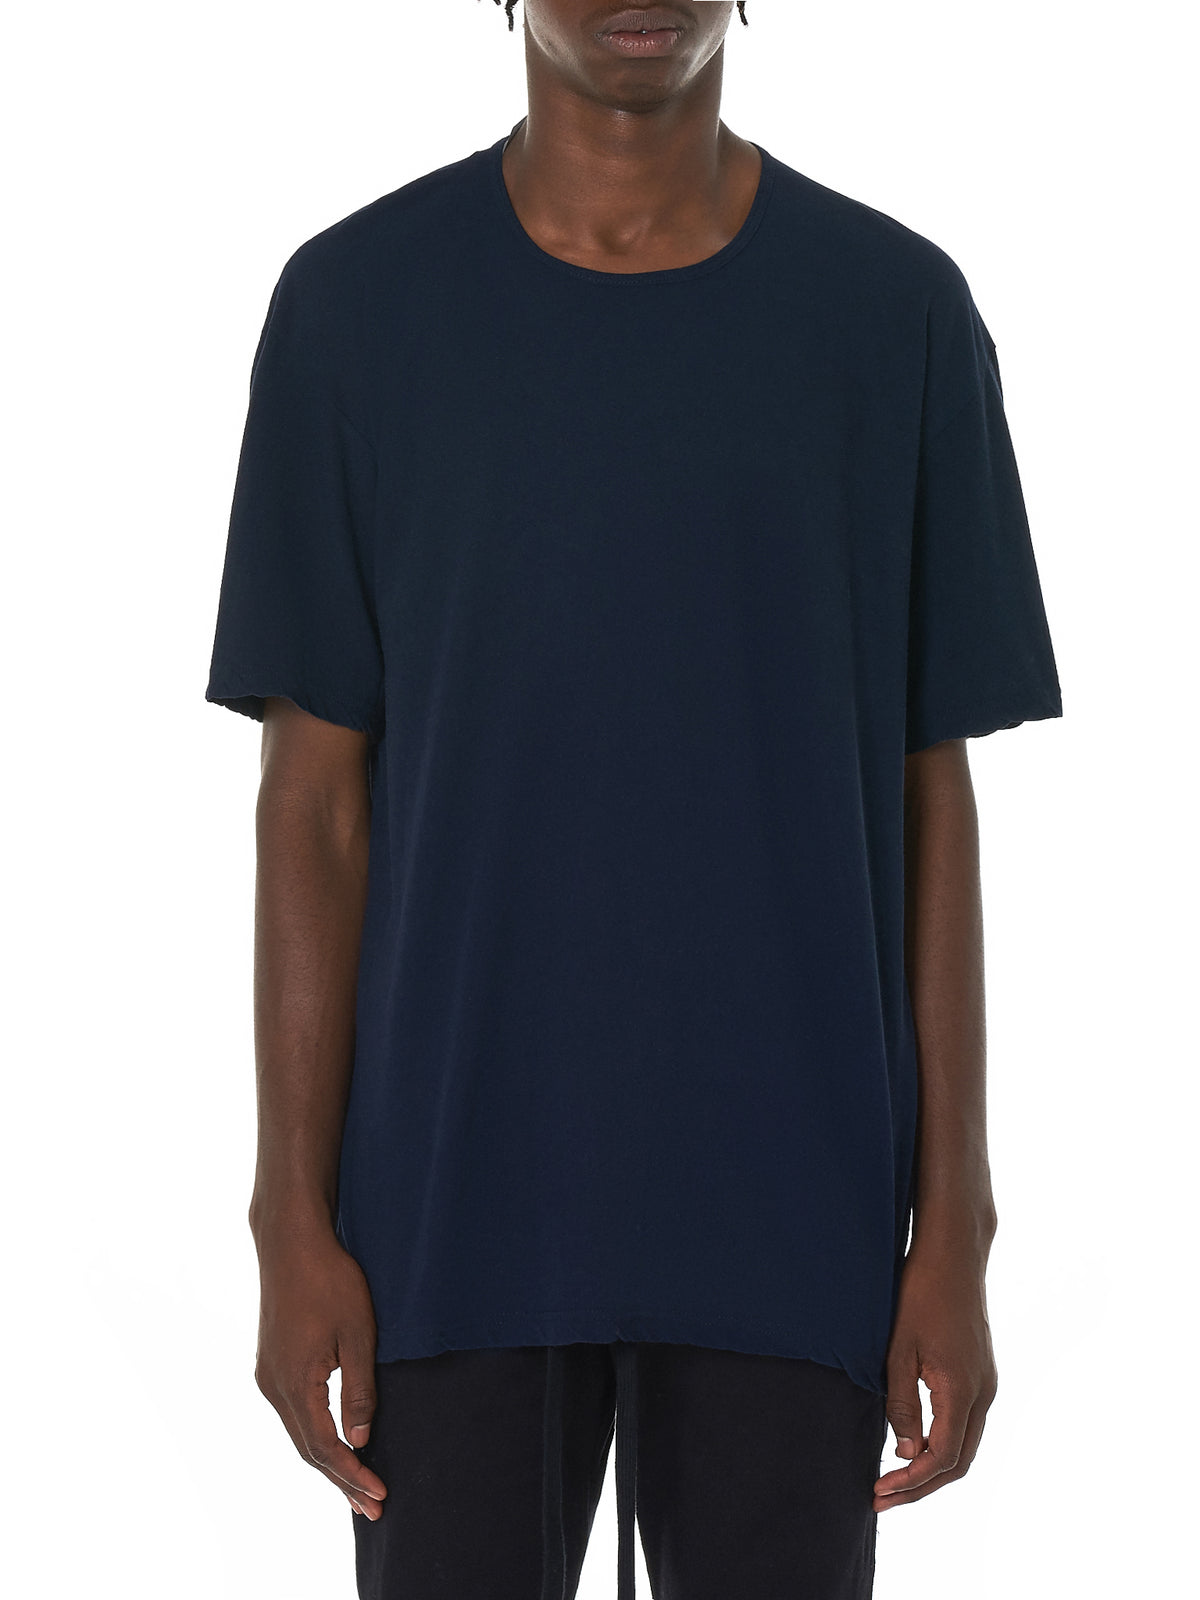 Attachment Blue Tee Shirt - Hlorenzo Front